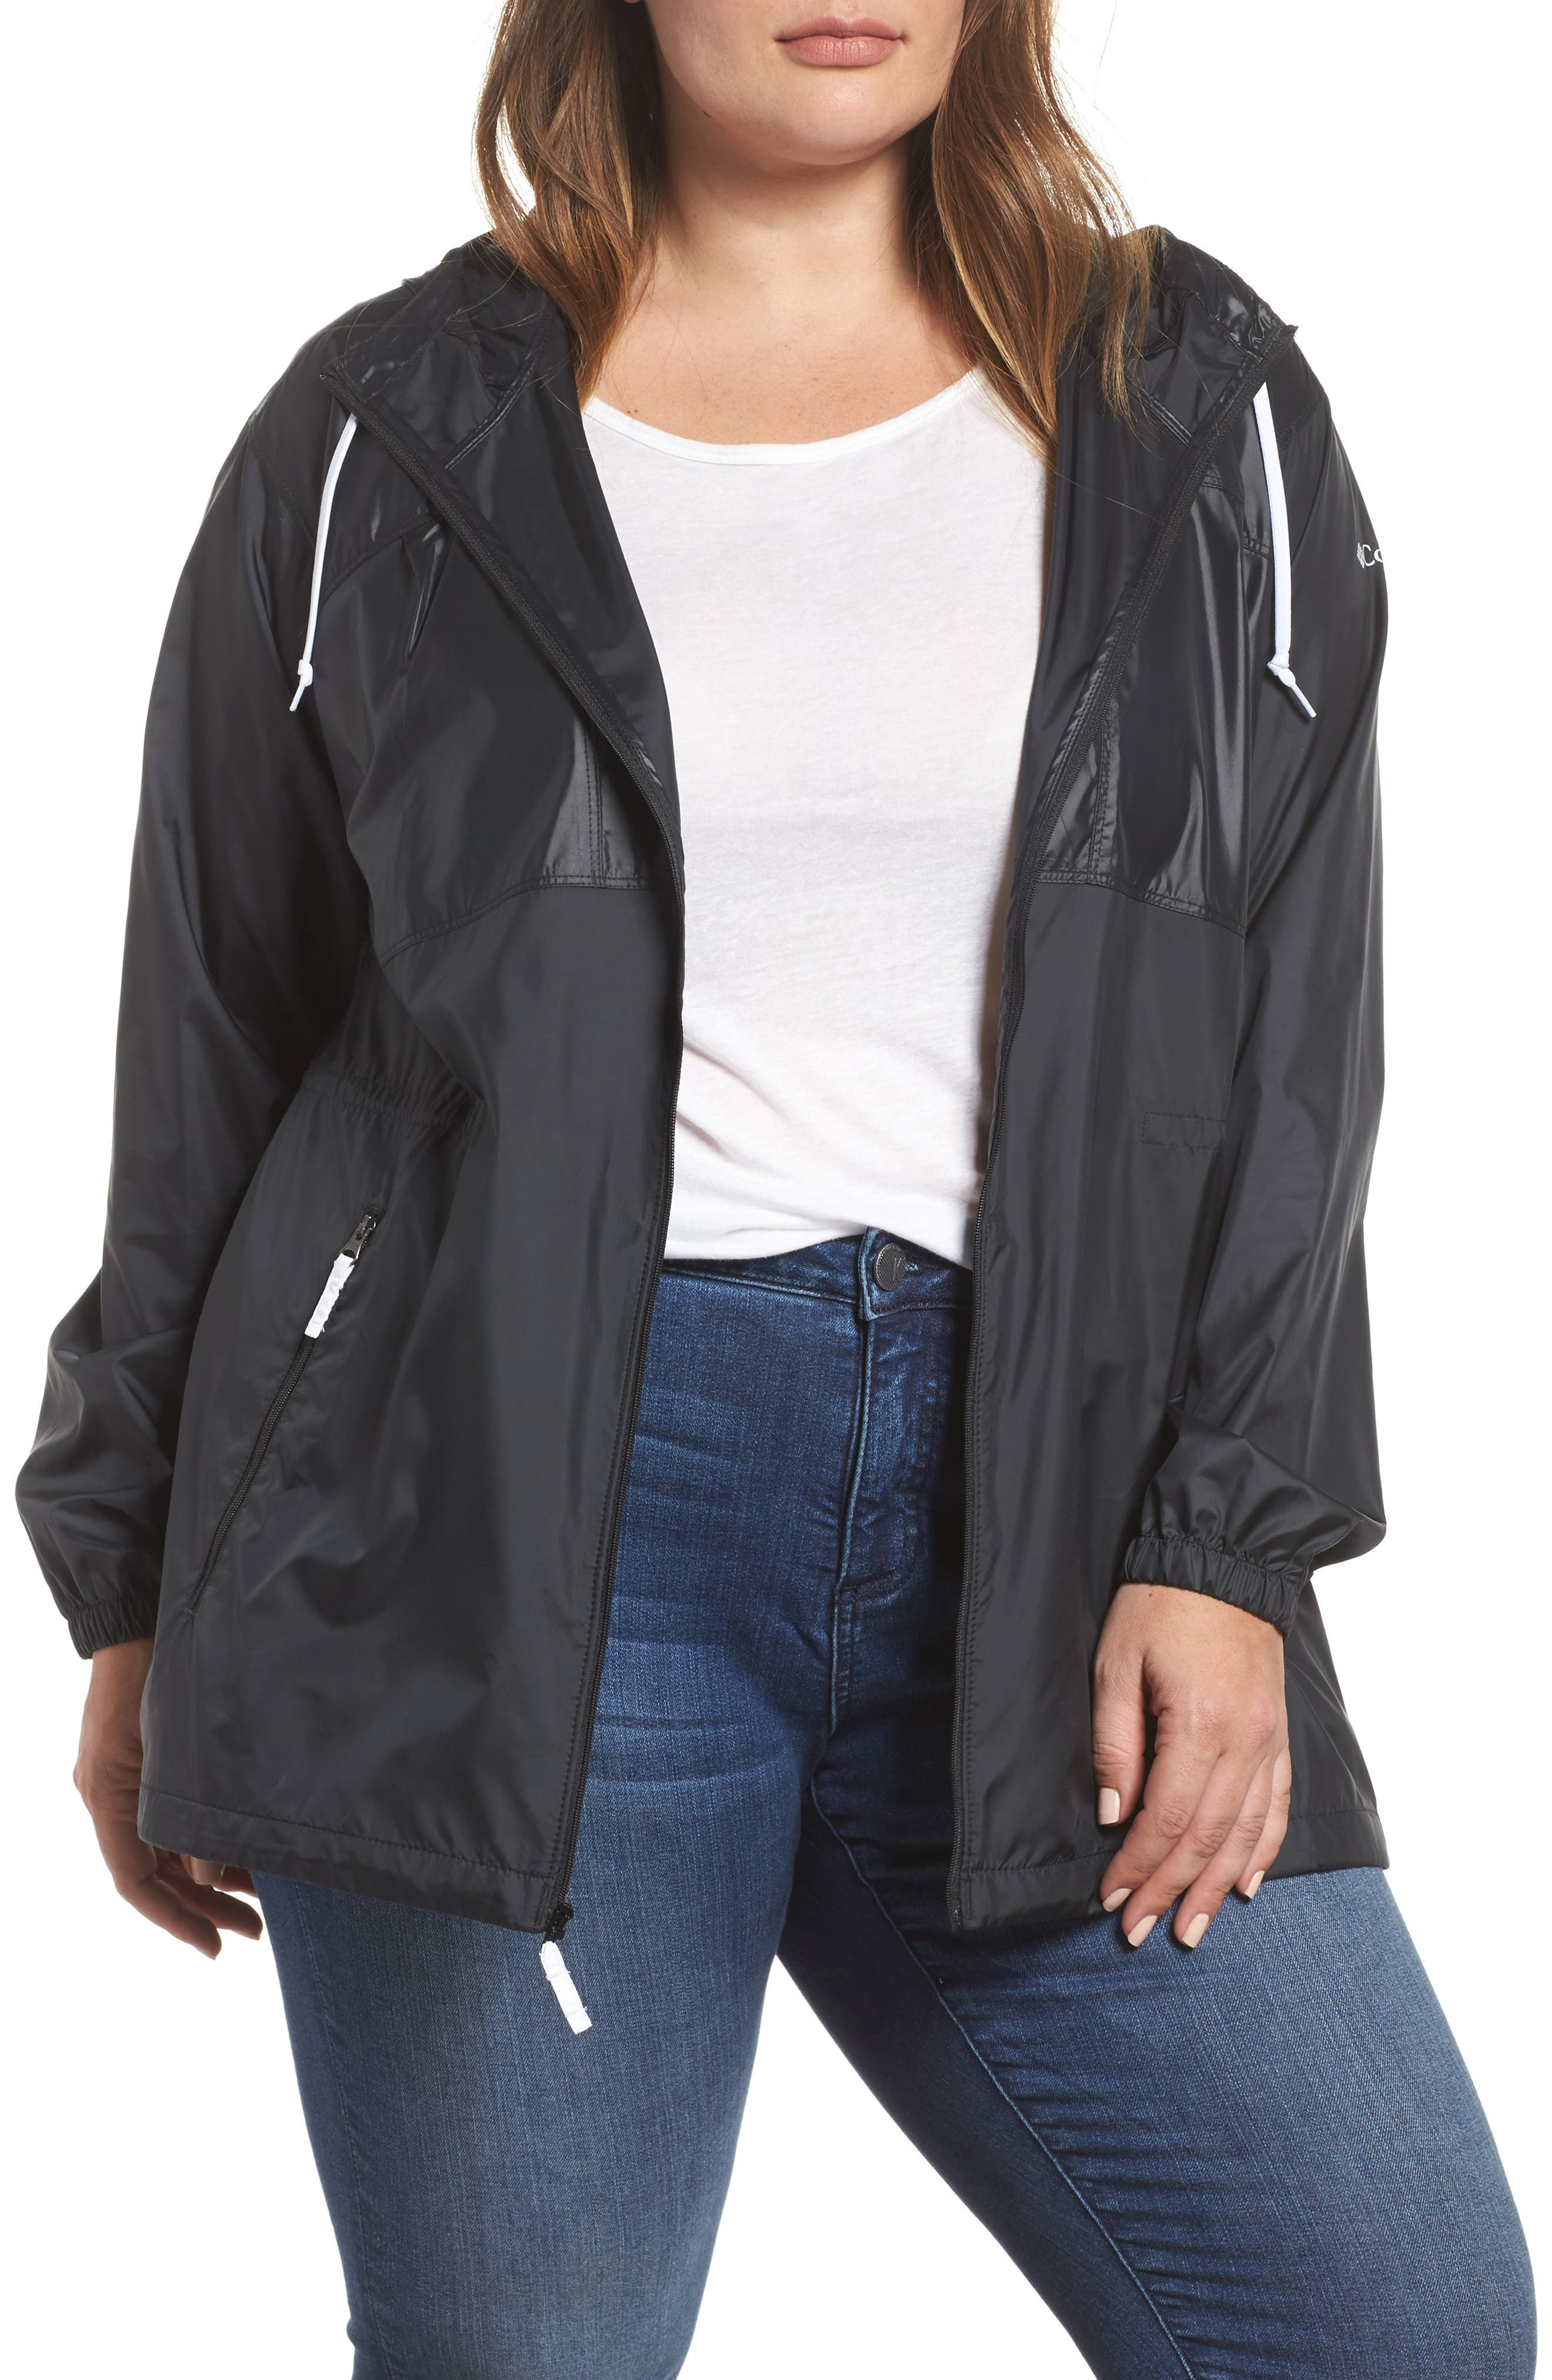 Flashback<sup>™</sup> Water Resistant Hooded Windbreaker,                             Main thumbnail 1, color,                             010